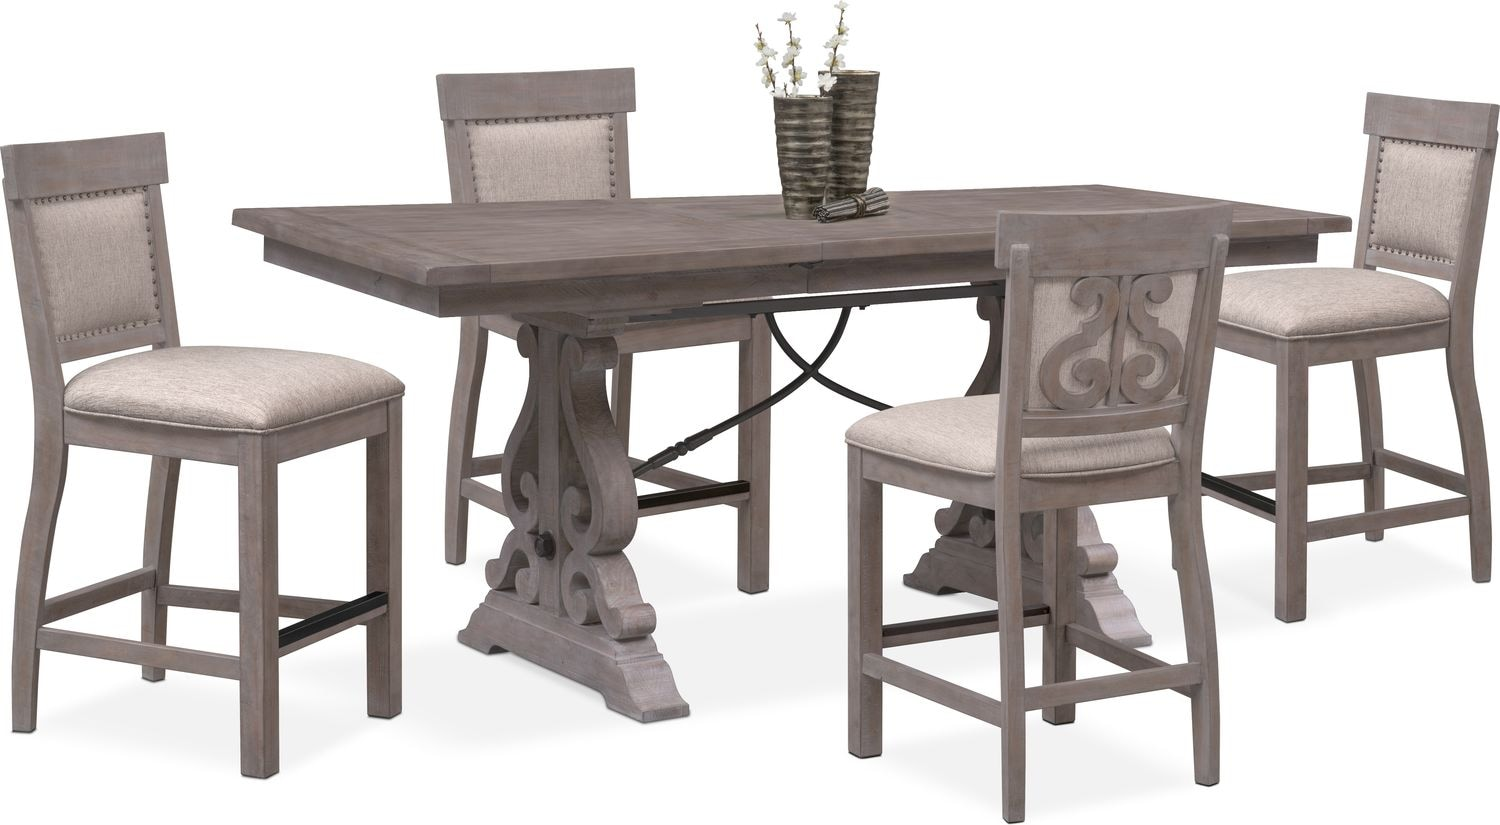 Charthouse Counter Height Dining Table And 4 Upholstered Stools